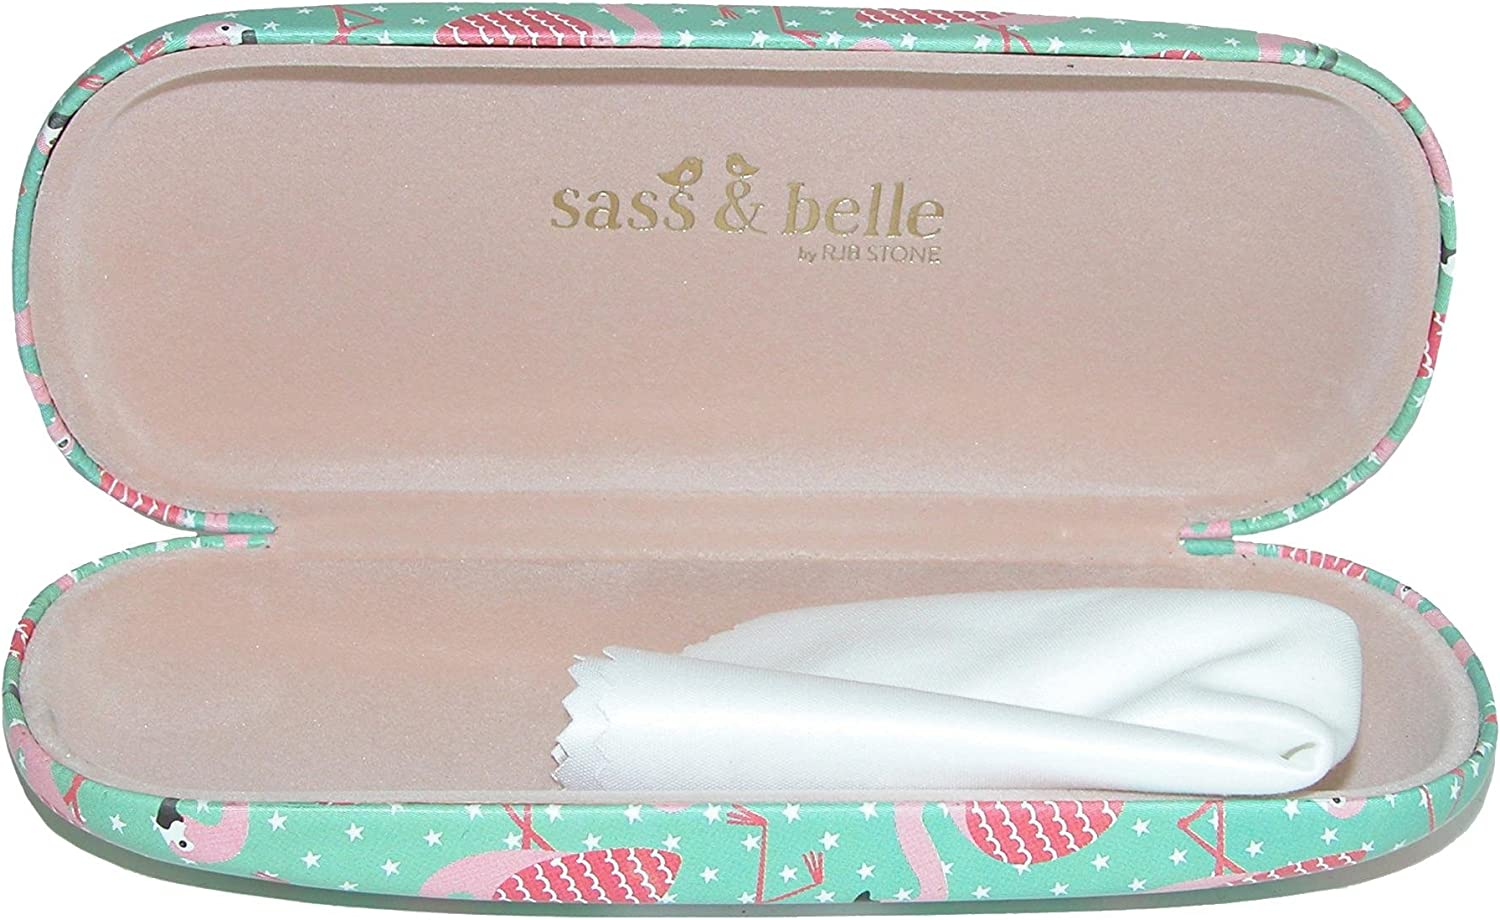 Sass & Belle Prosecco Queen Glasses Case